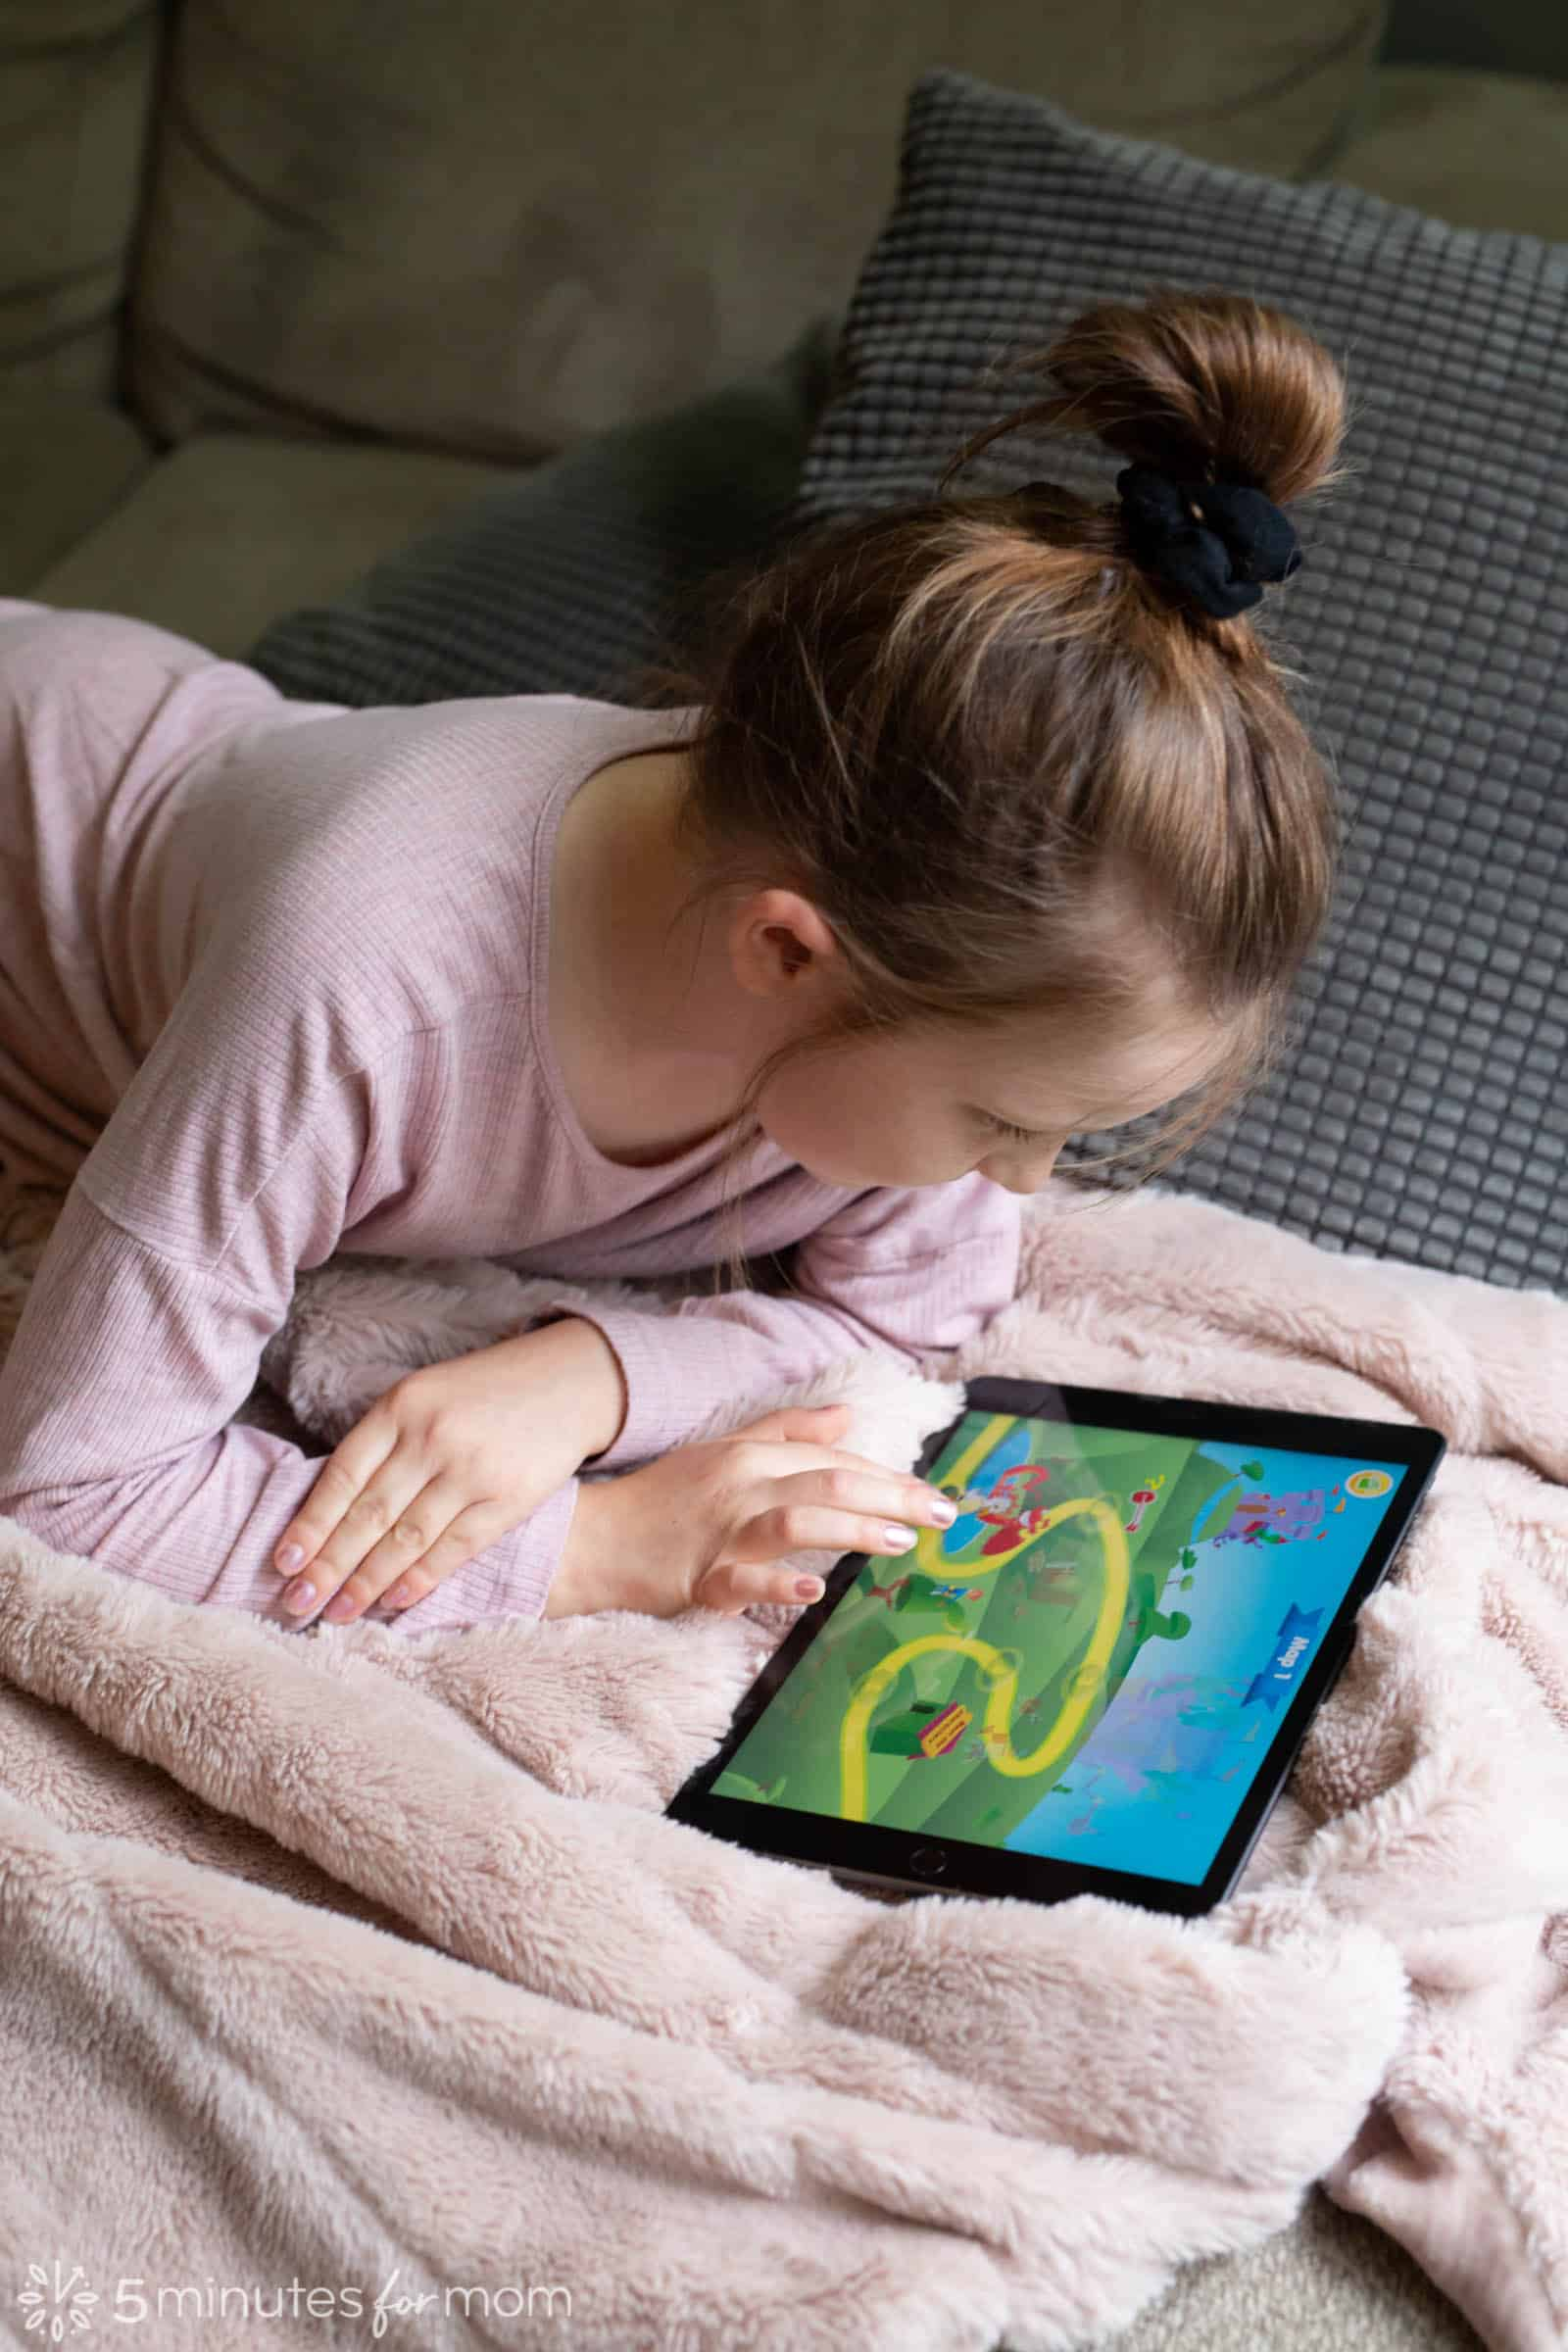 Young girl using an educational app